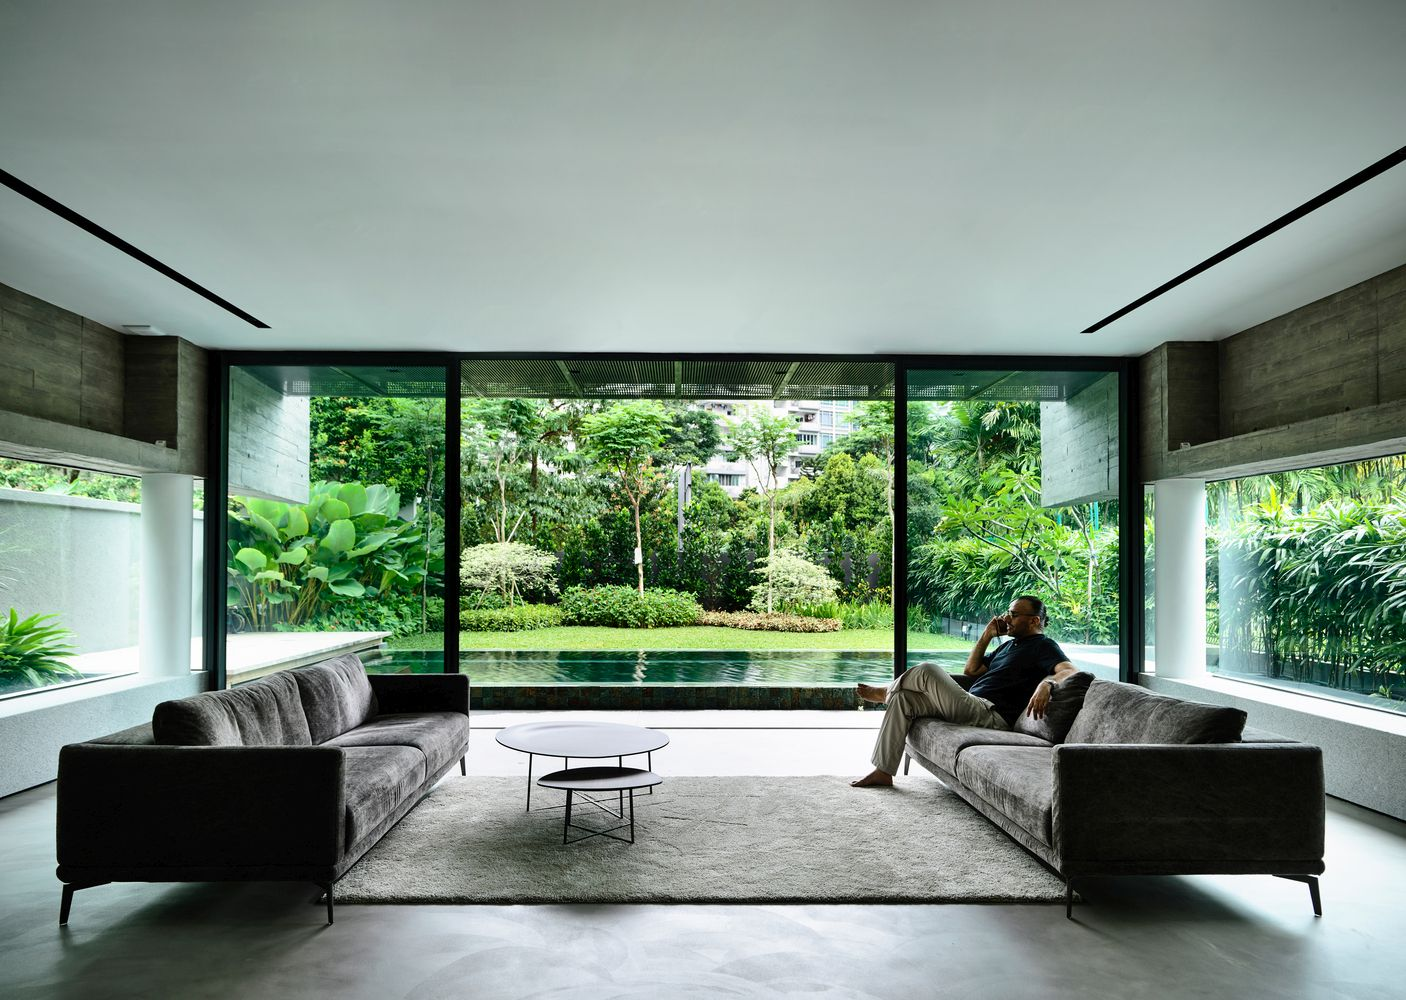 The ground floor living area has gorgeous views of the pool and the garden beyond it